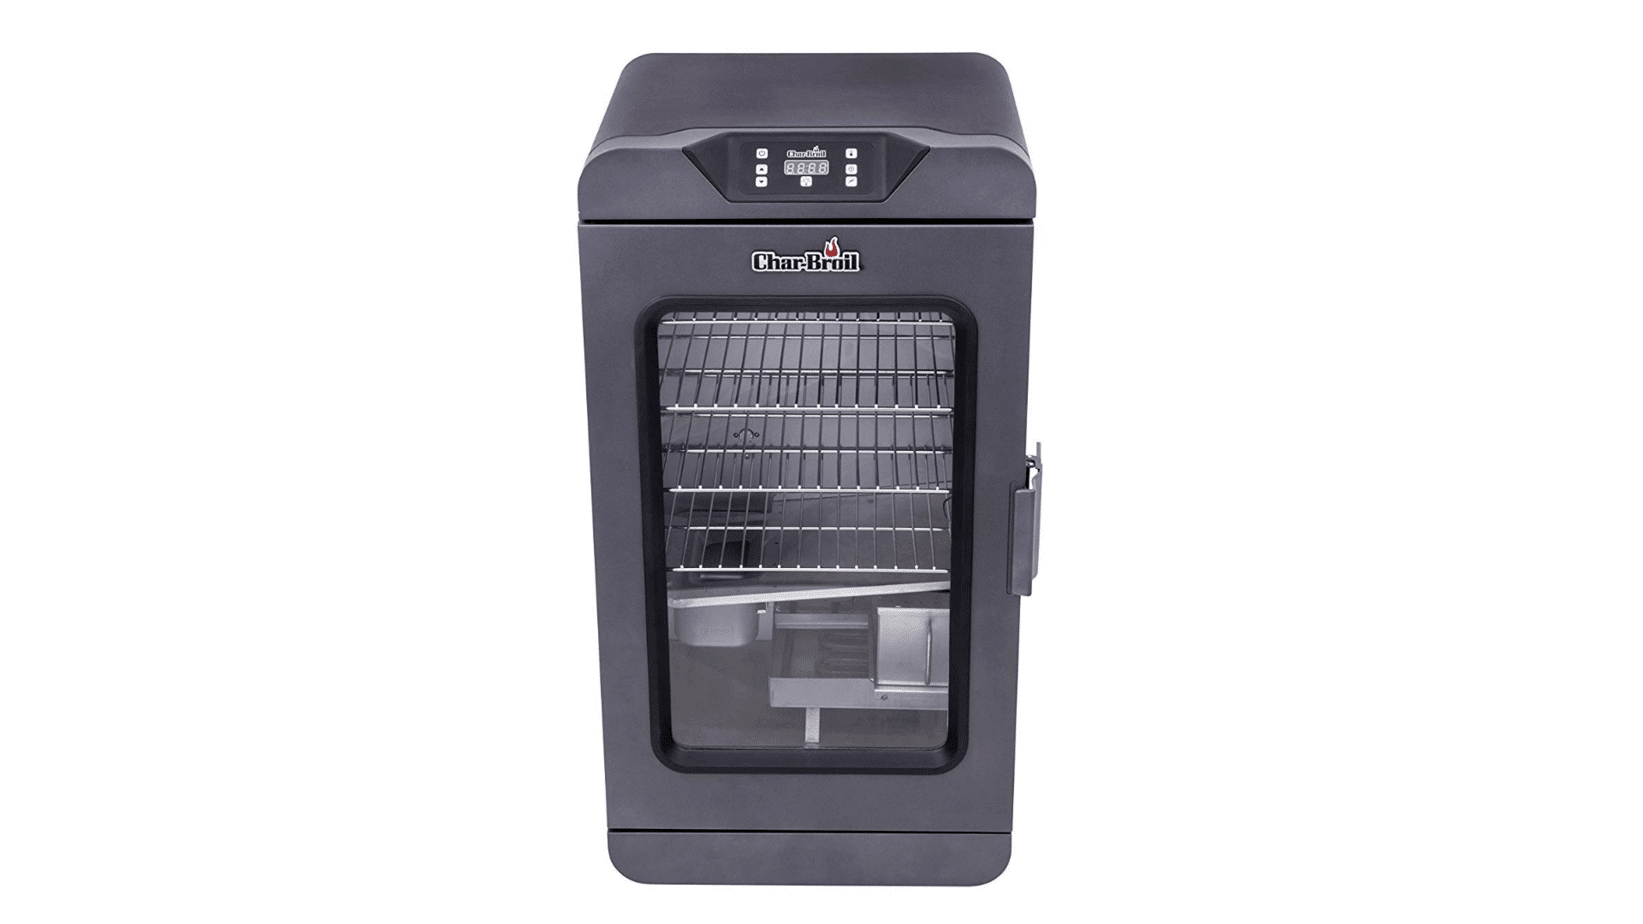 Product image of Char-Broil 19202101 Deluxe Digital Electric Smoker